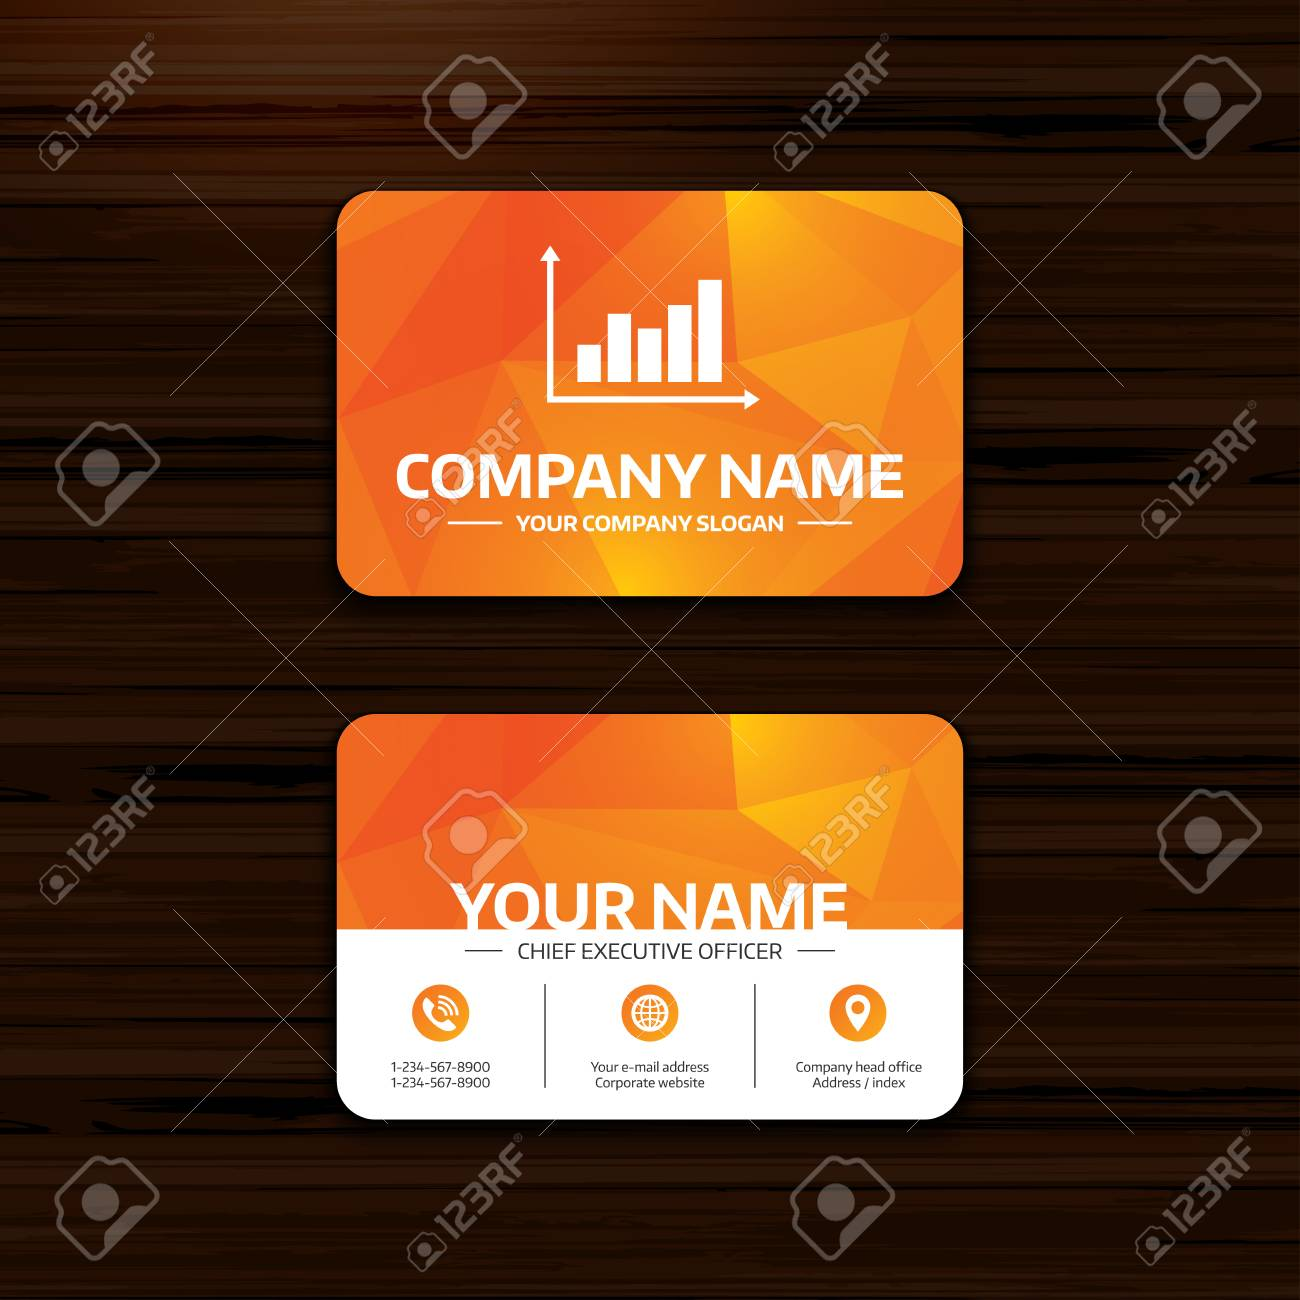 Business or visiting card template graph chart sign icon diagram business or visiting card template graph chart sign icon diagram symbol statistics colourmoves